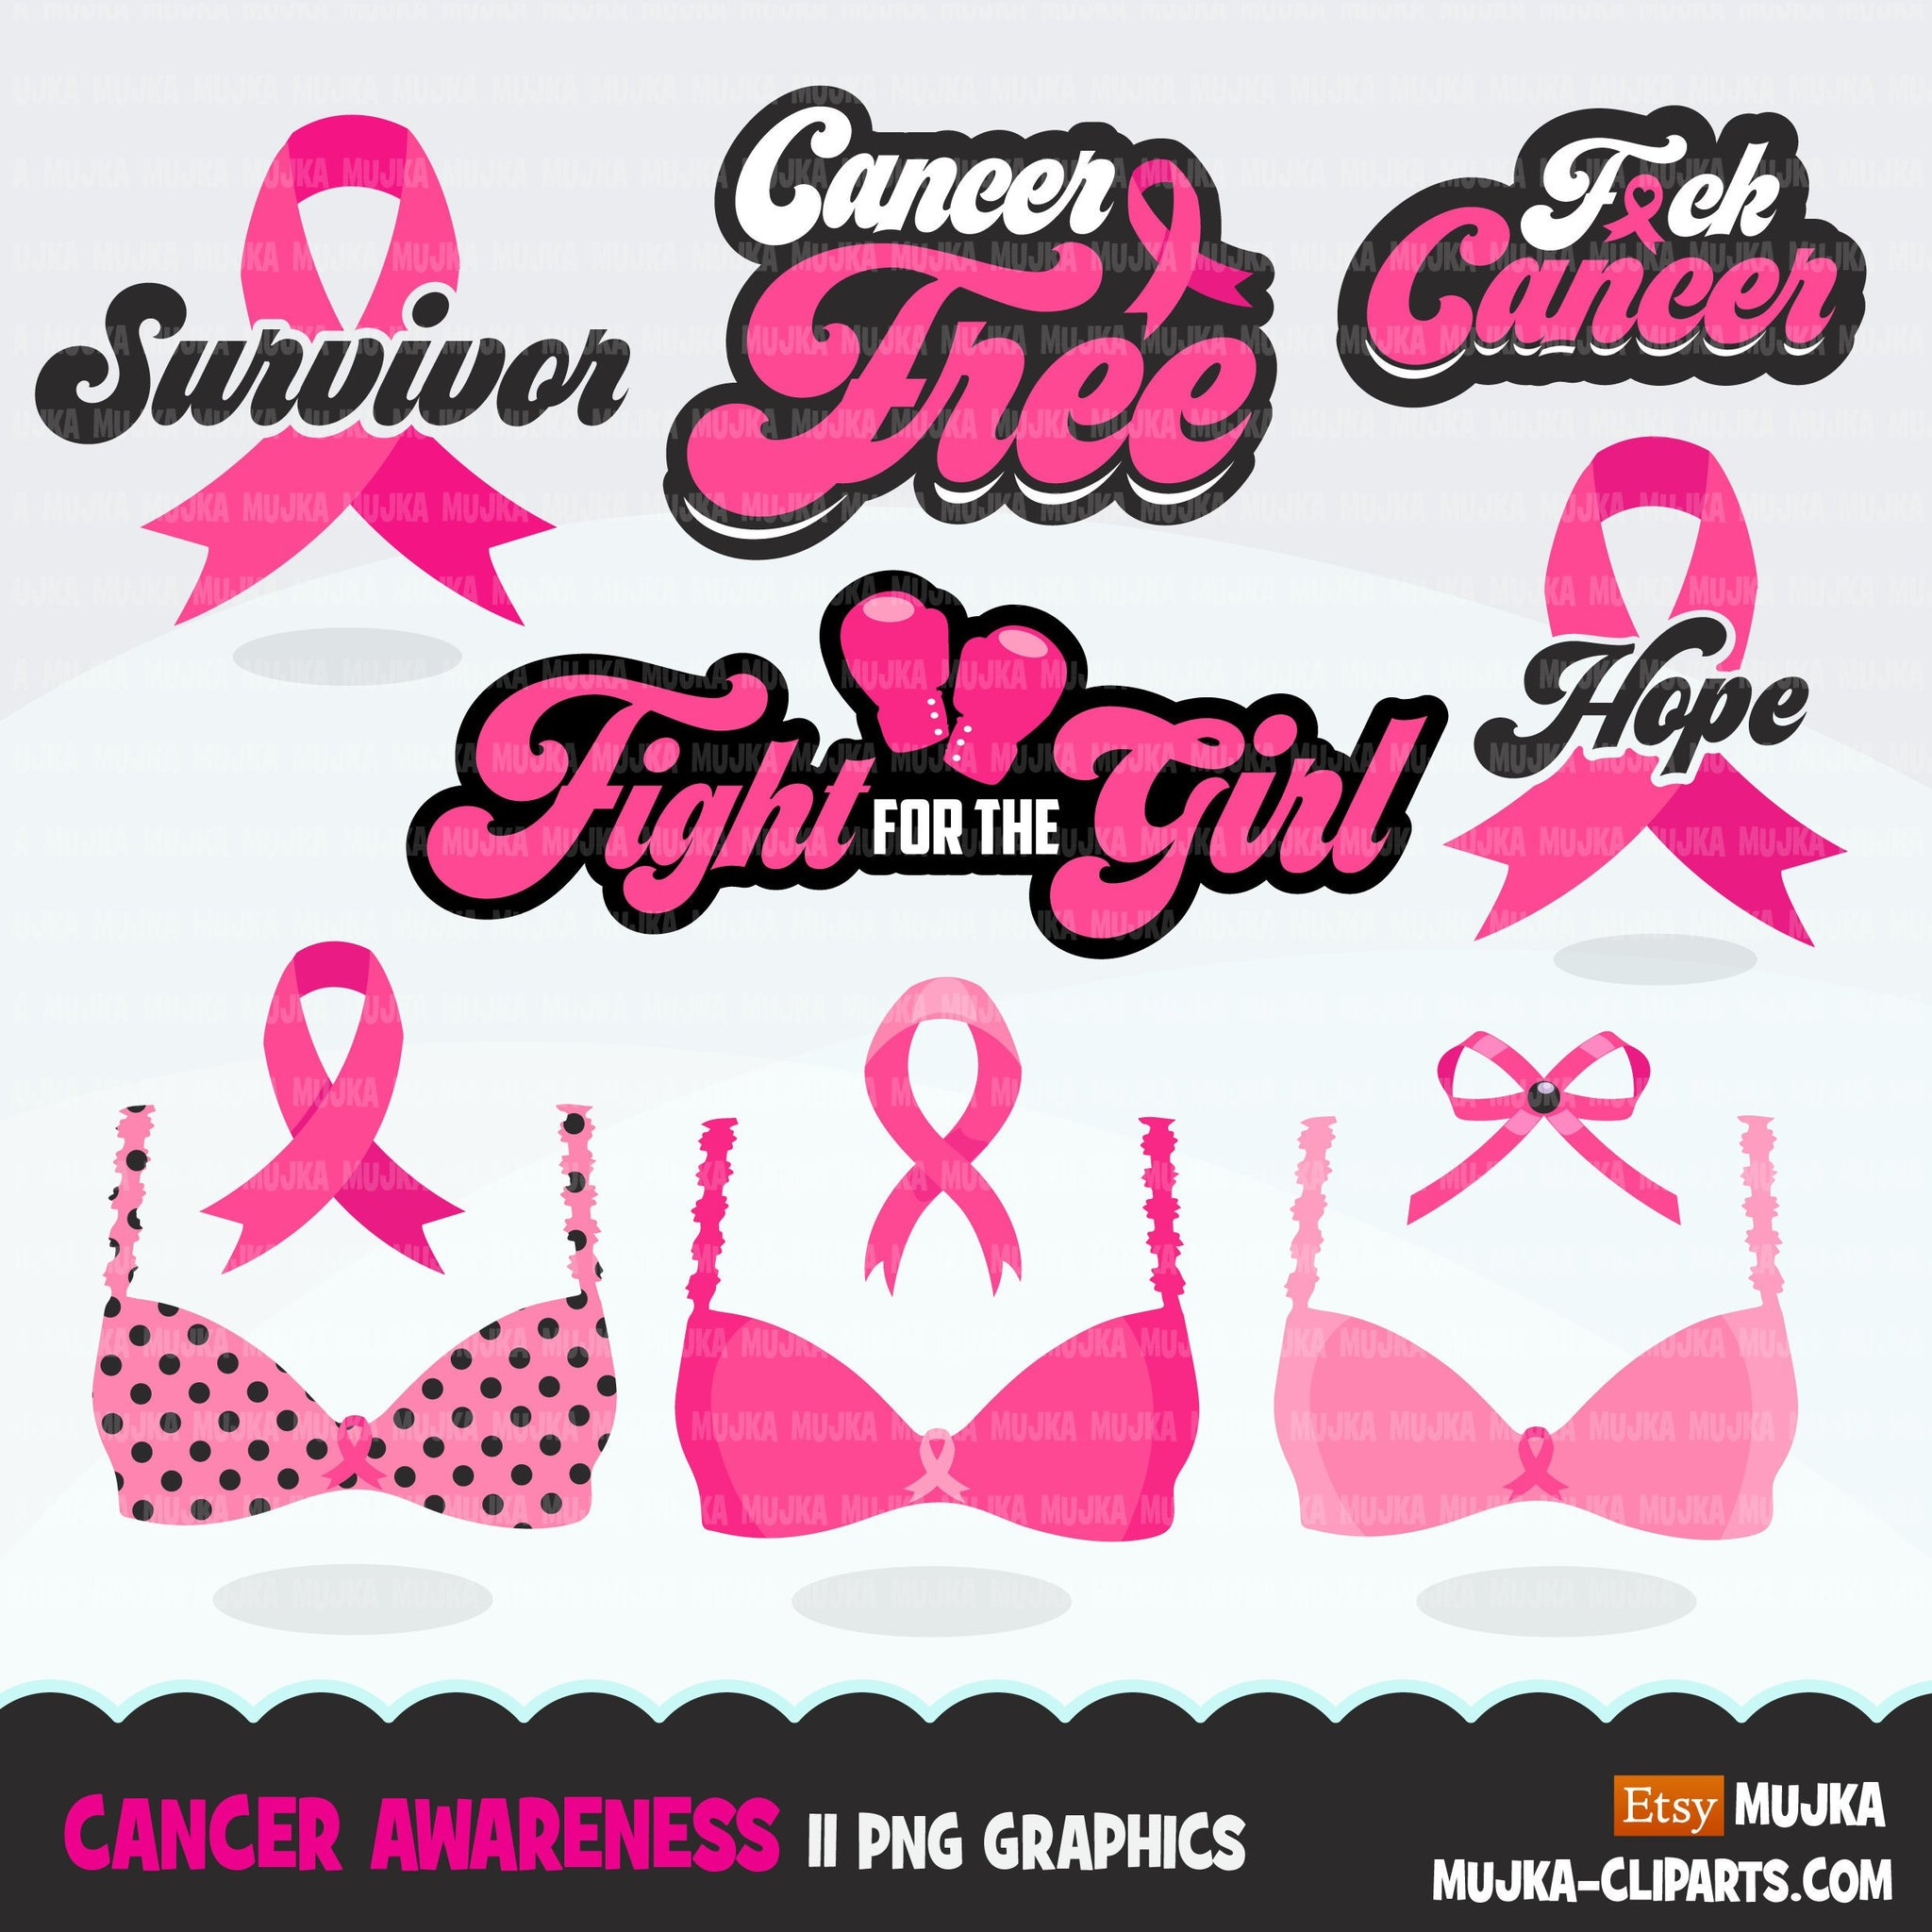 Breast Cancer awareness clipart. Pink boxing gloves, fight for the girl, pink ribbon, pink bra survivor graphics